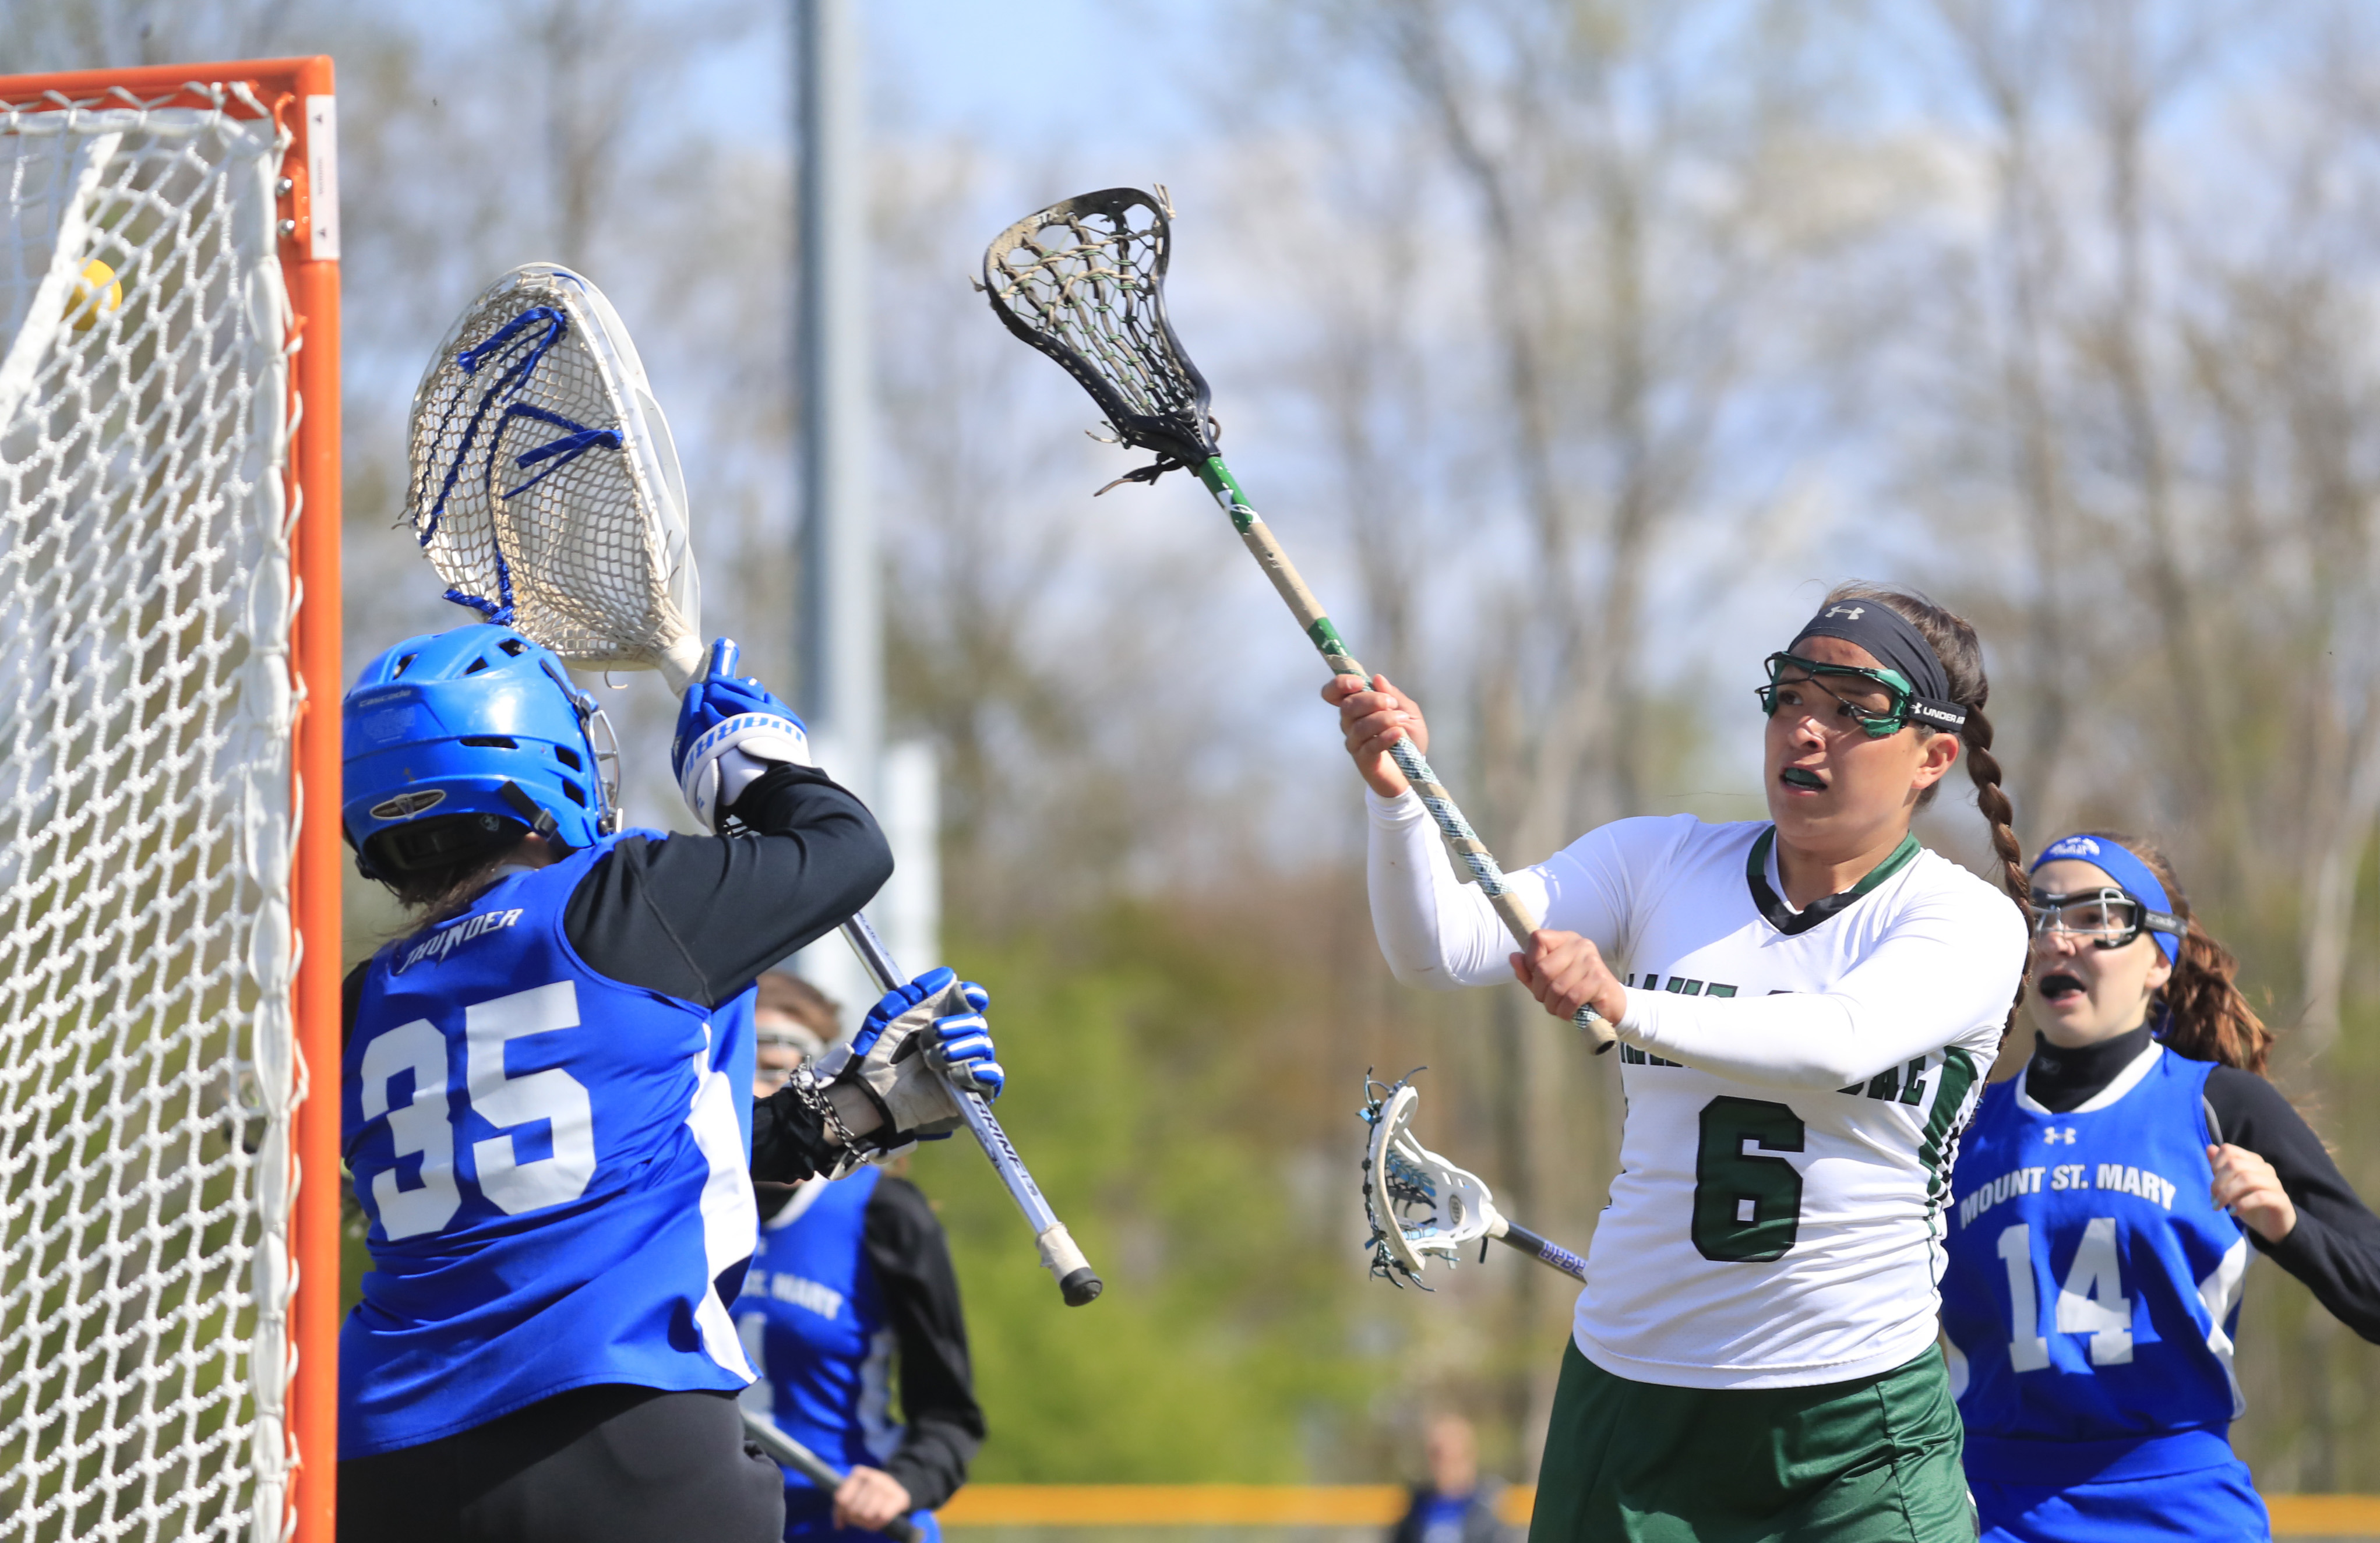 Ivy Santana scores a goal for Lake Shore in its 20-1 girls lacrosse win against Mount St. Mary on Monday. (Harry Scull Jr./Buffalo News)